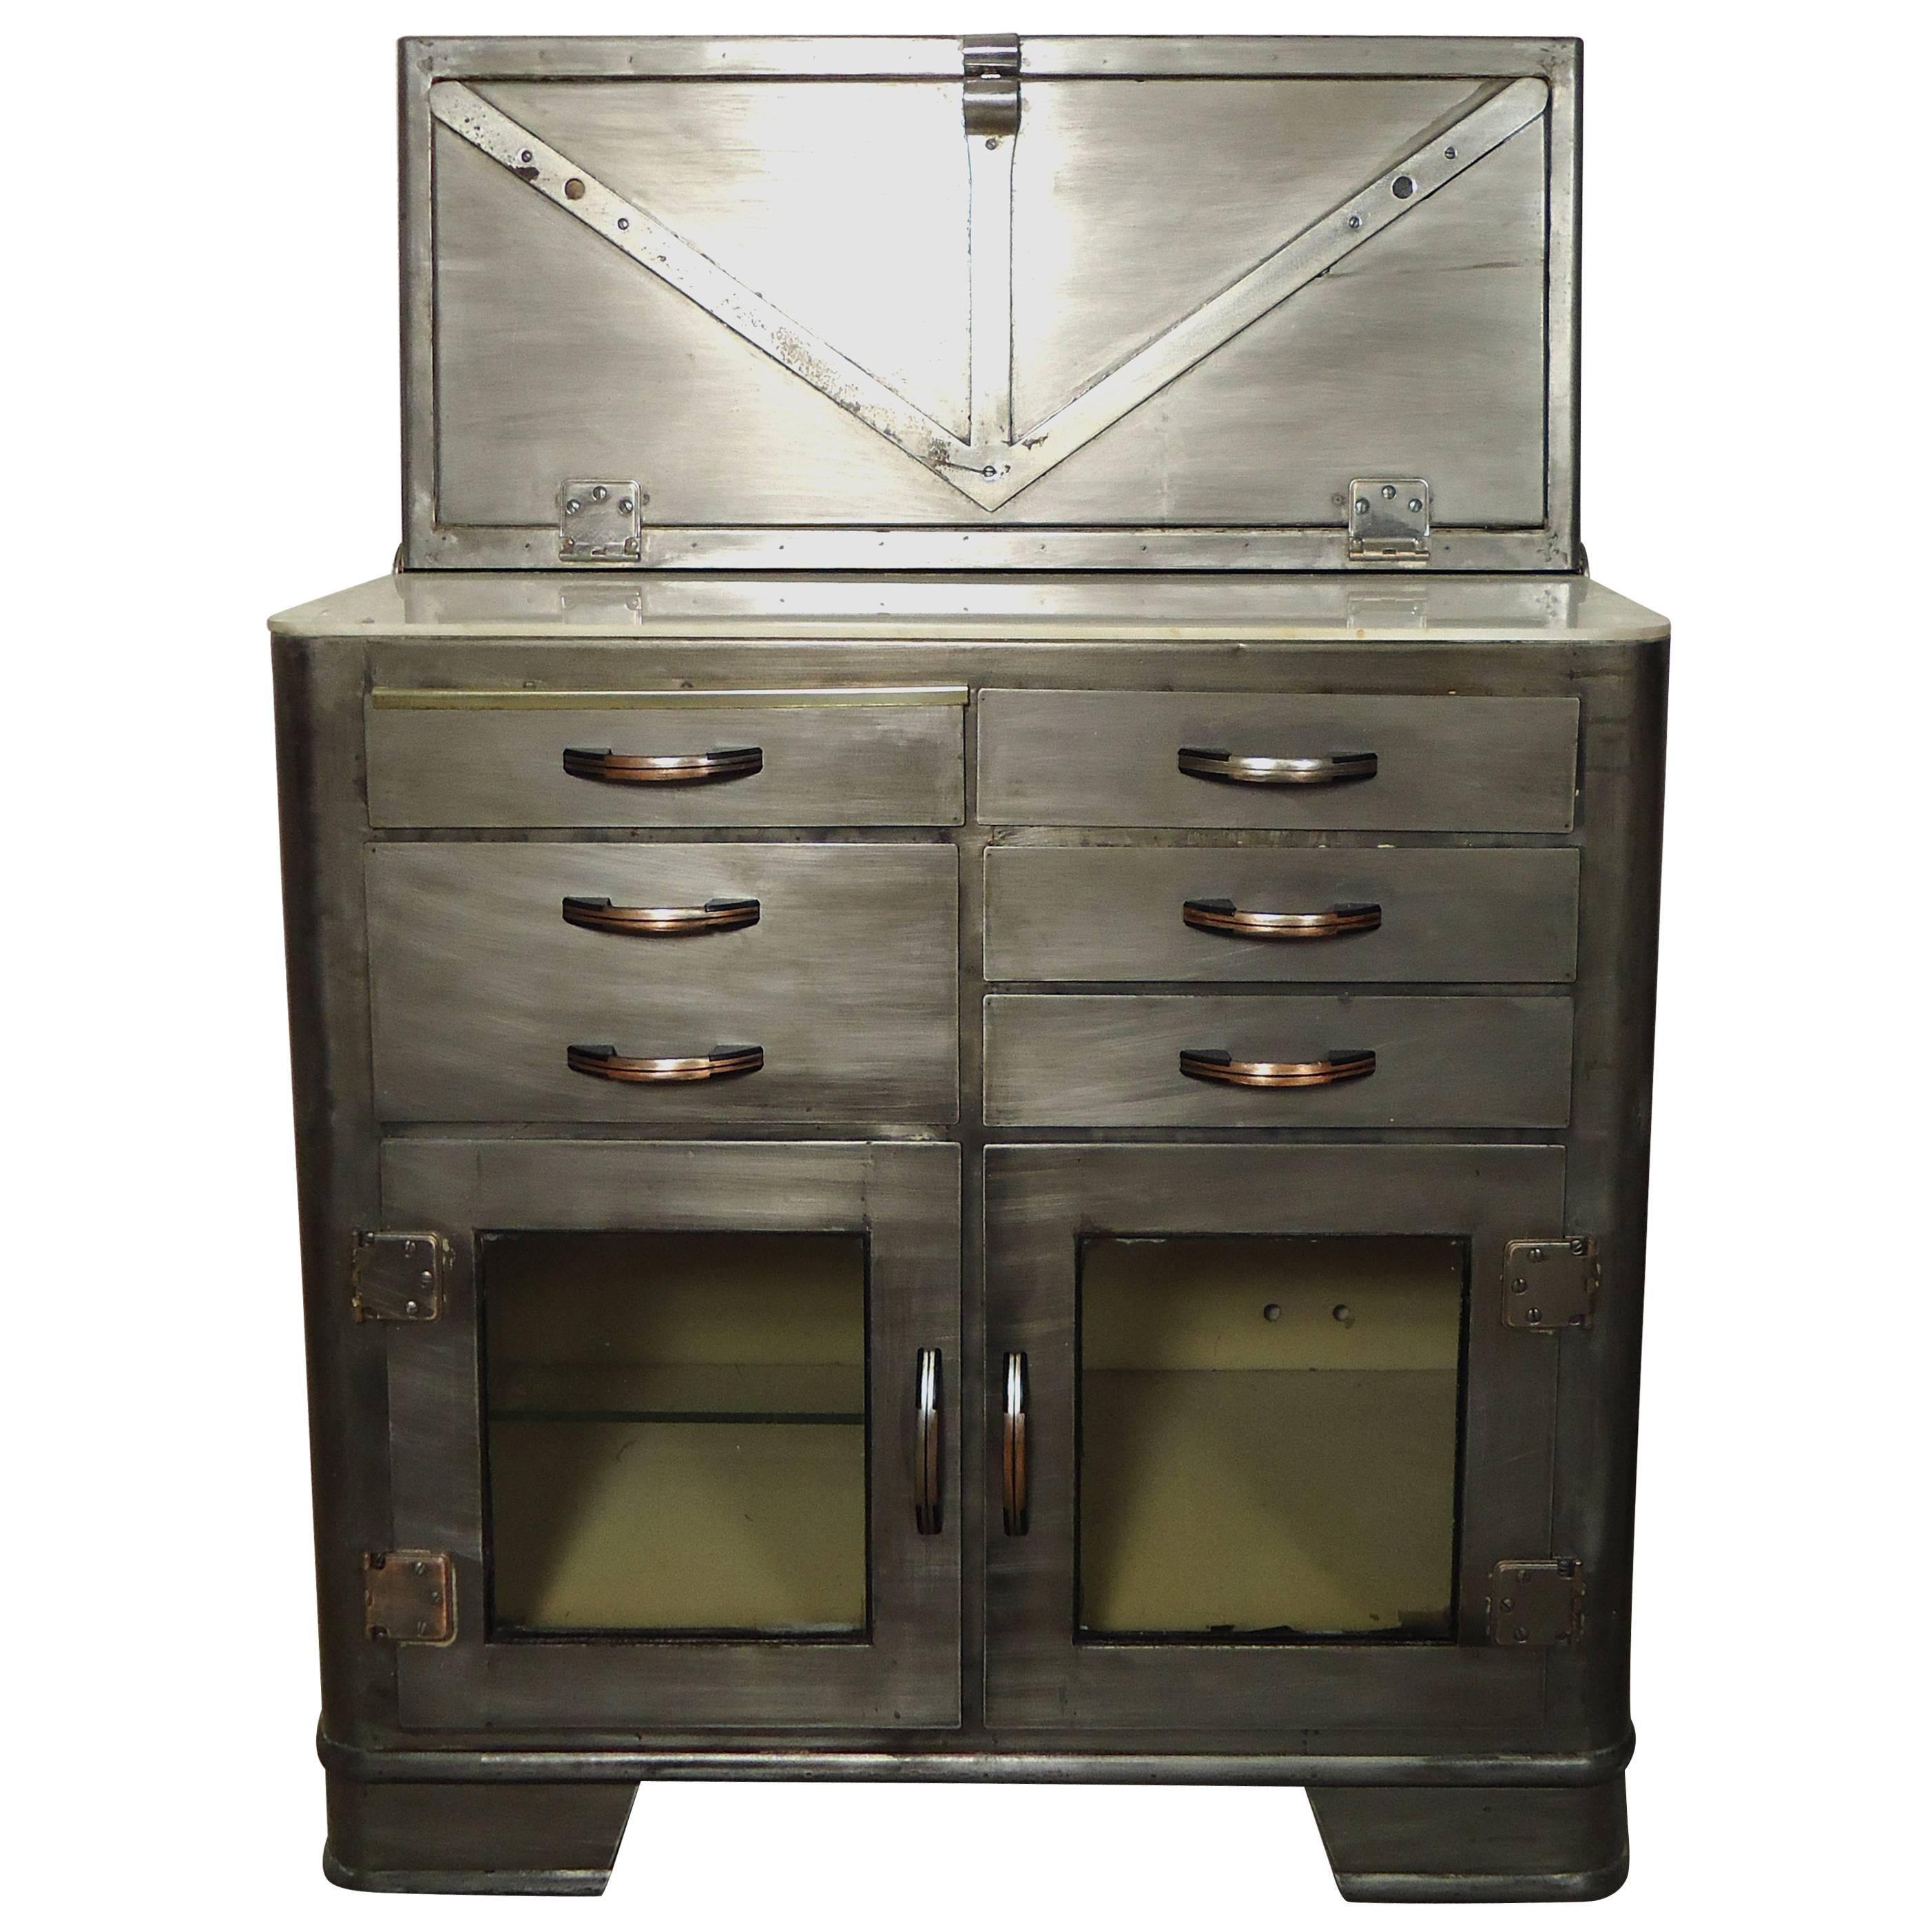 Vintage Hospital Cabinet, Bathroom Storage